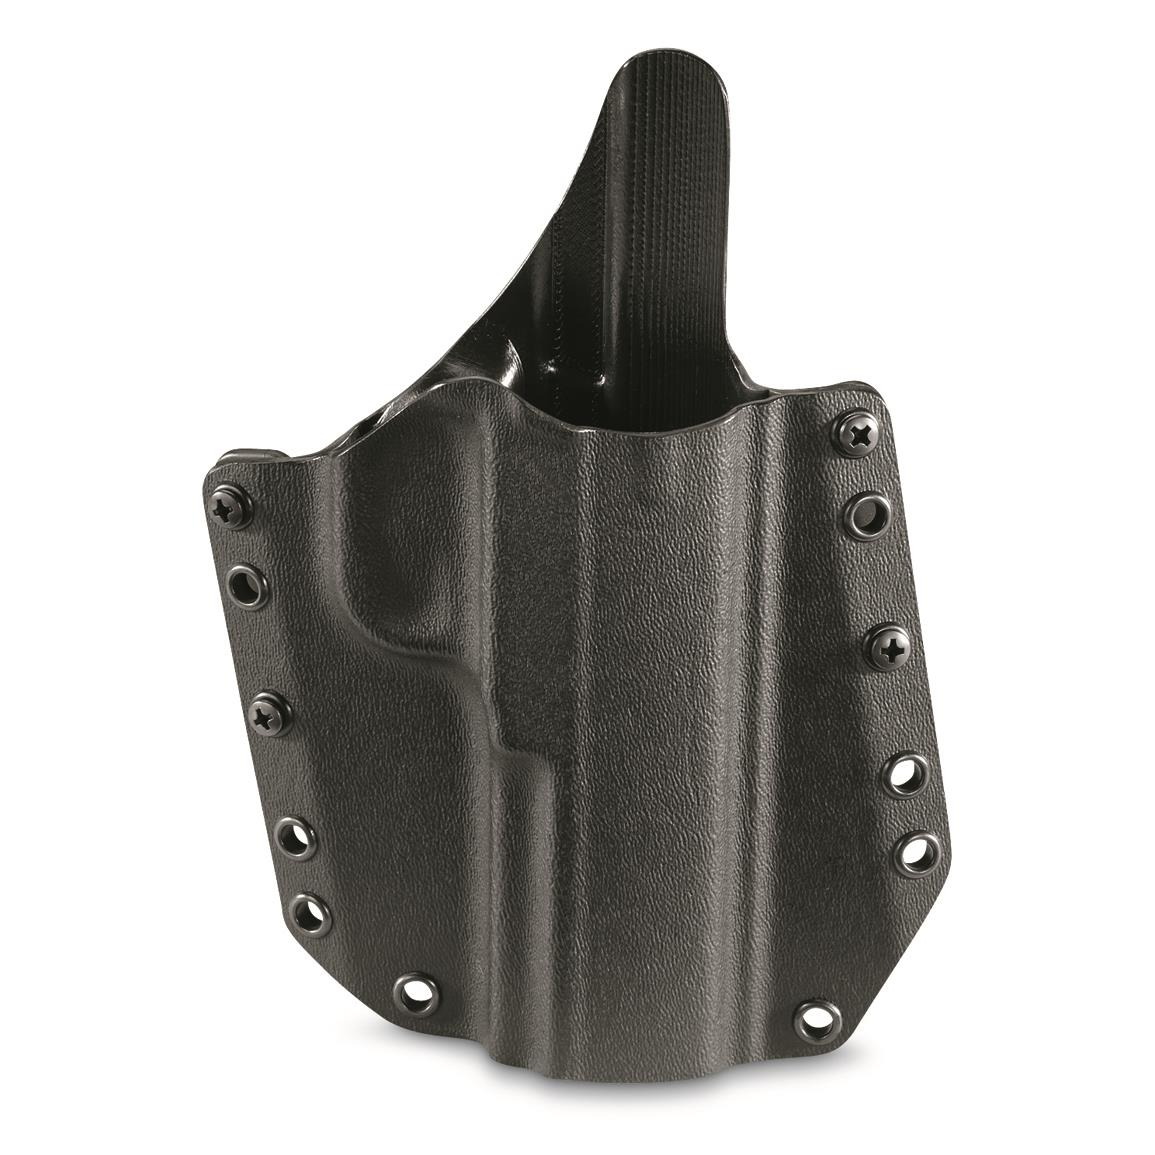 Mission First Tactical Remington RP9 OWB Holster